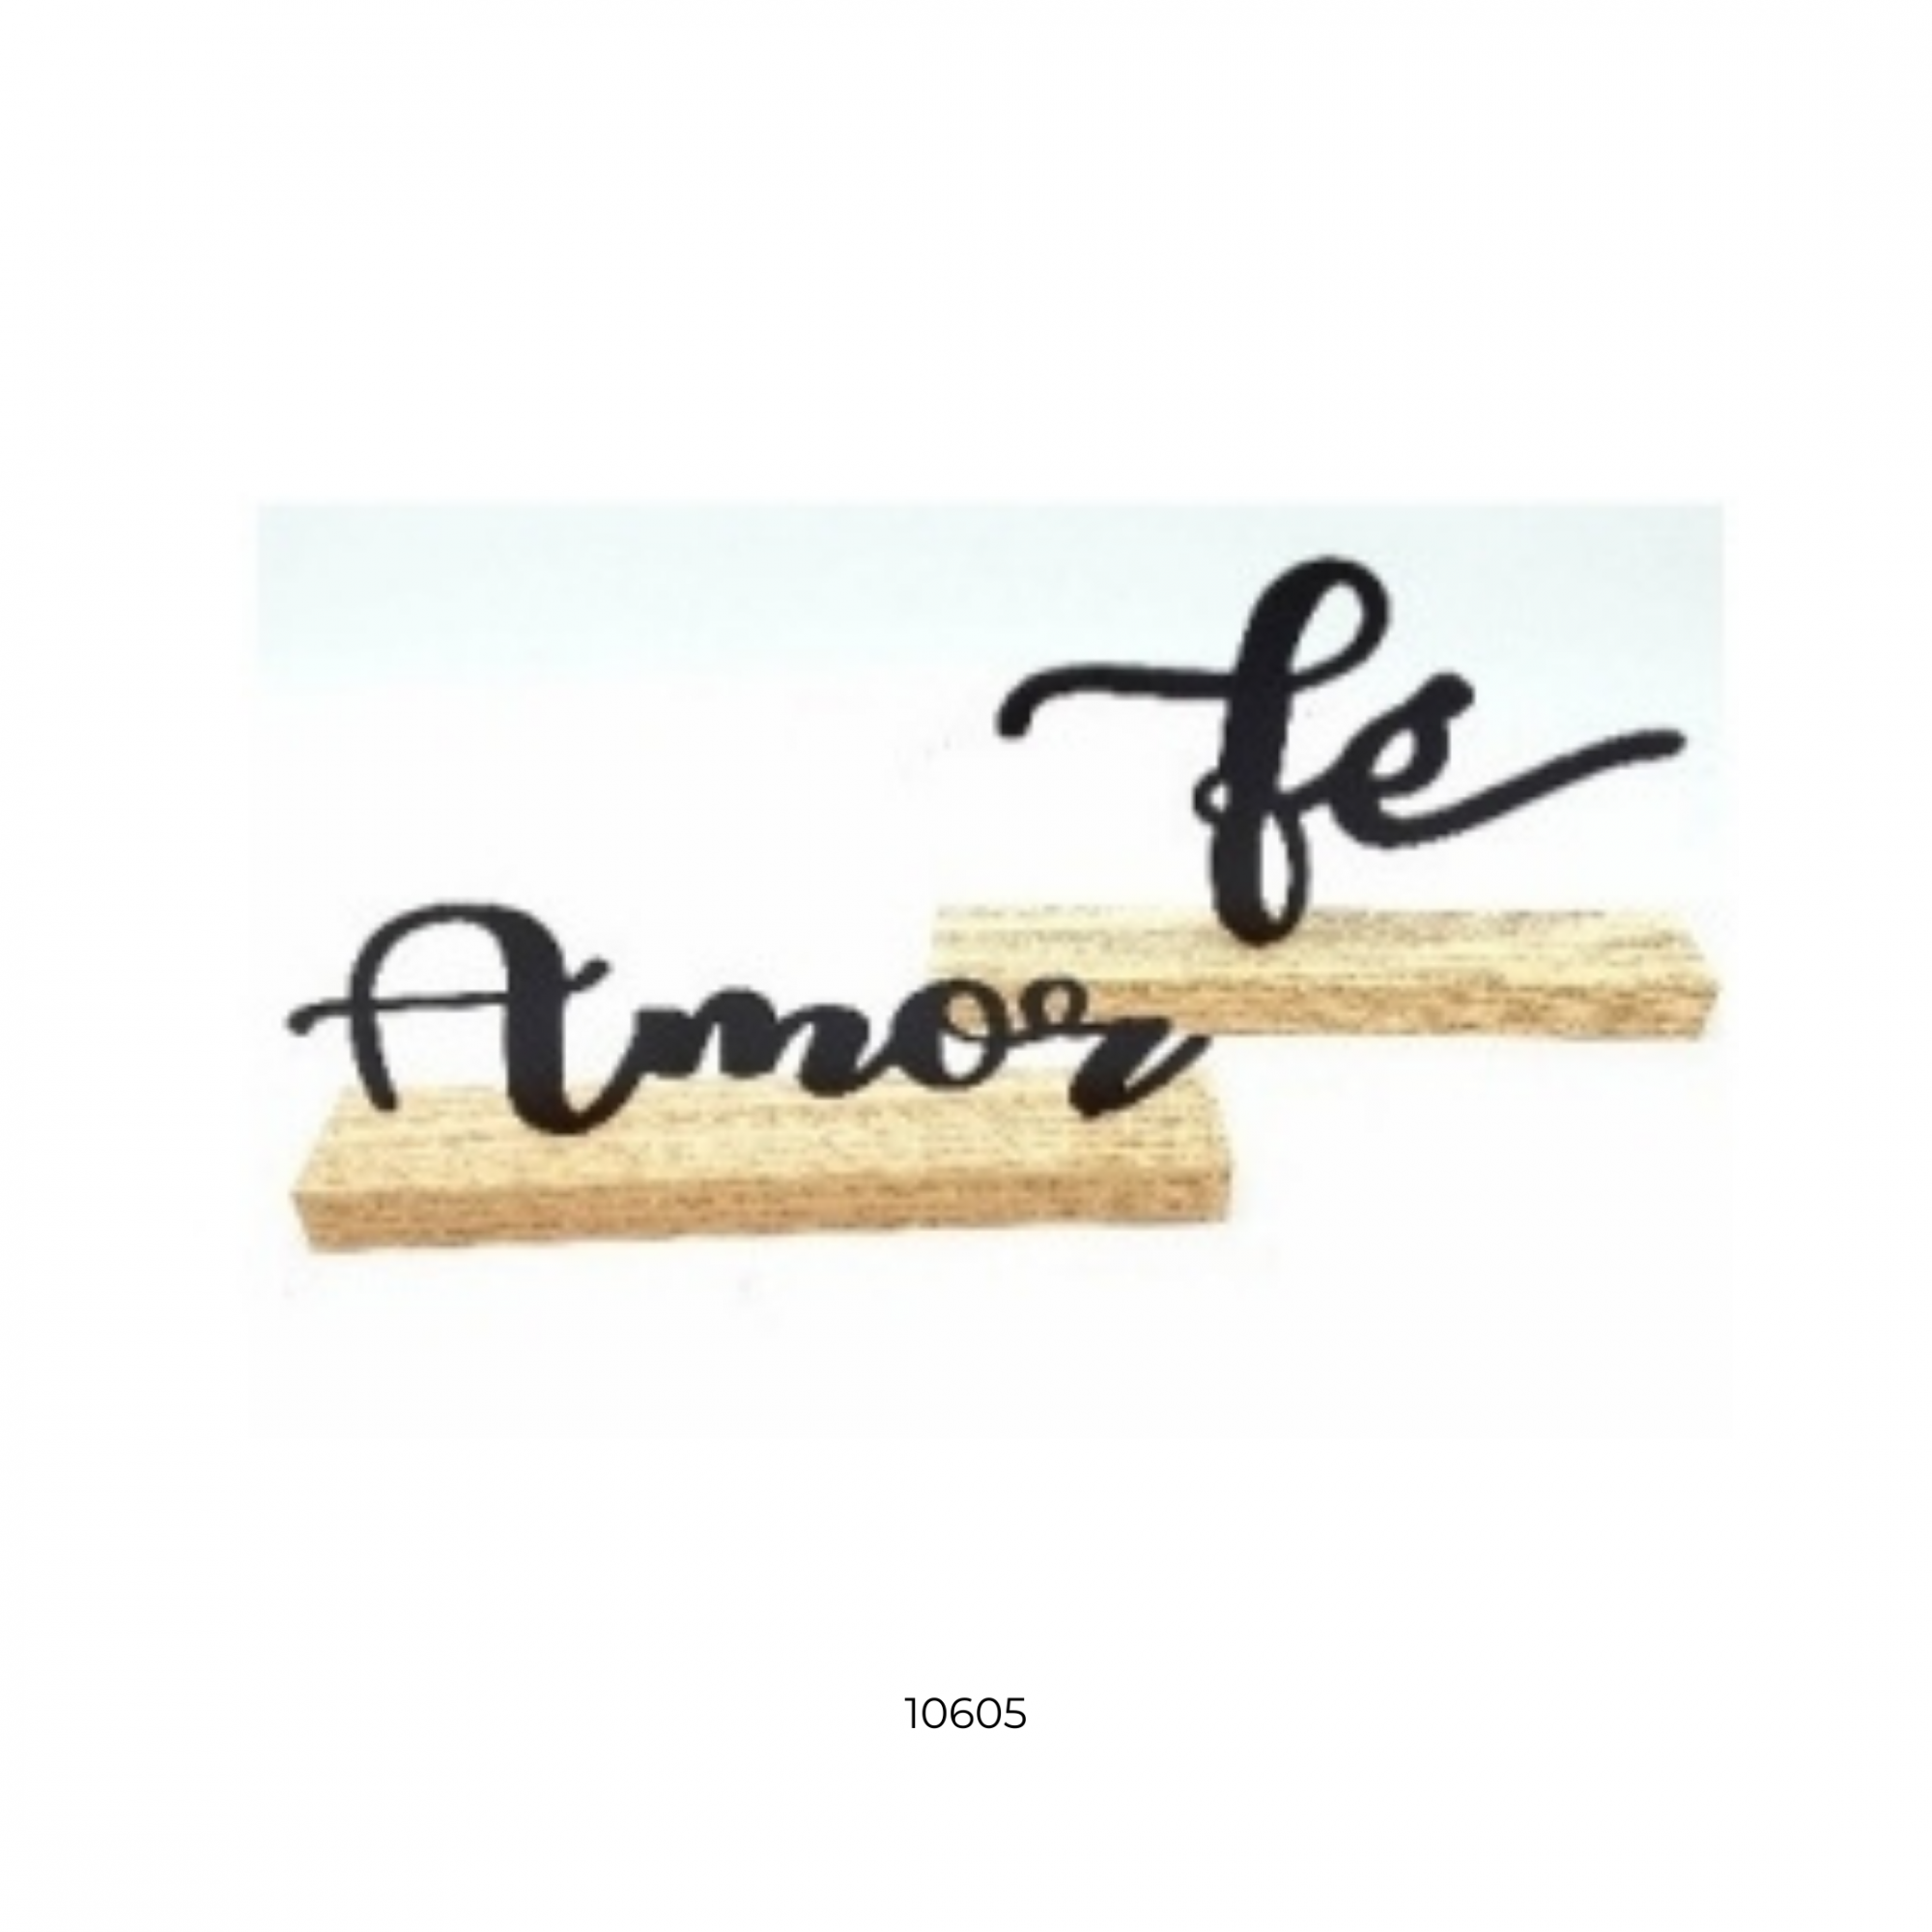 10605 ENF DECOR MADEIRA E METAL - Amor